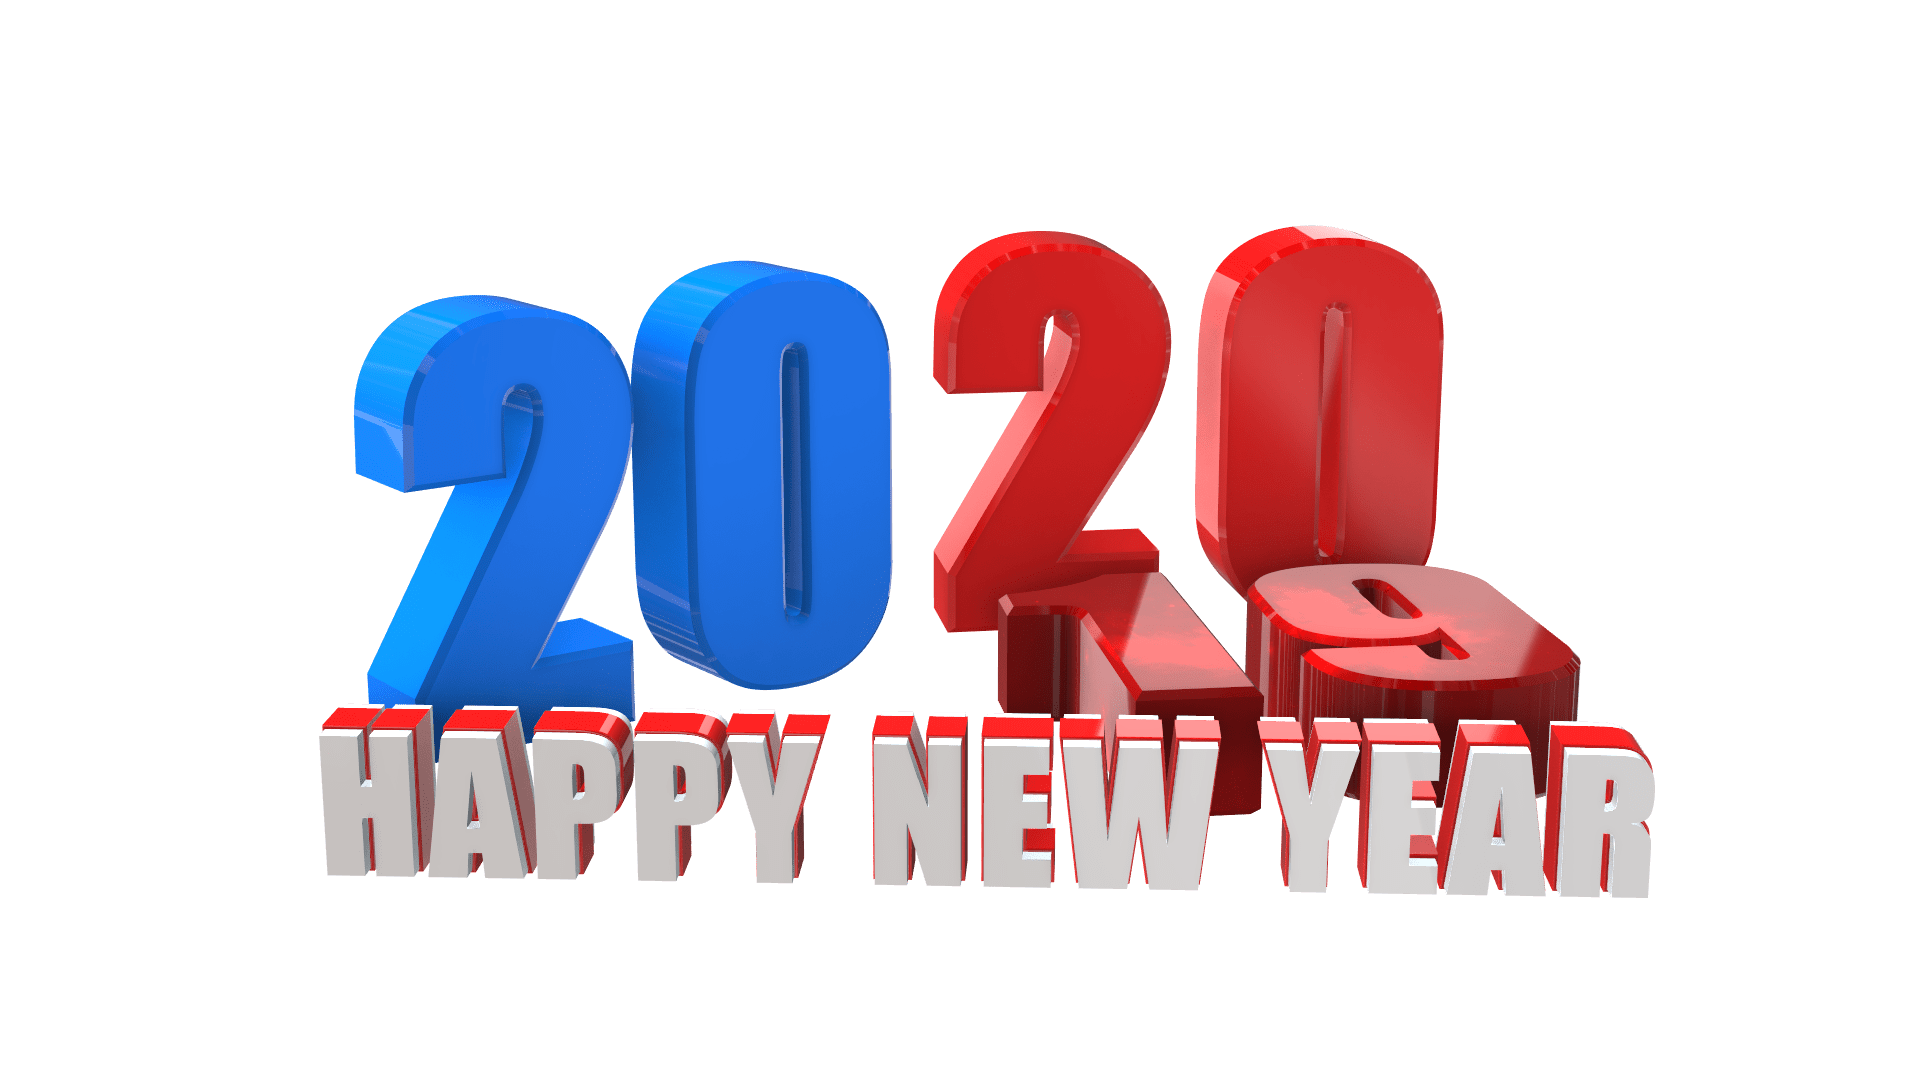 Happy new year png clipart, backgrounds free download - MTC TUTORIALS